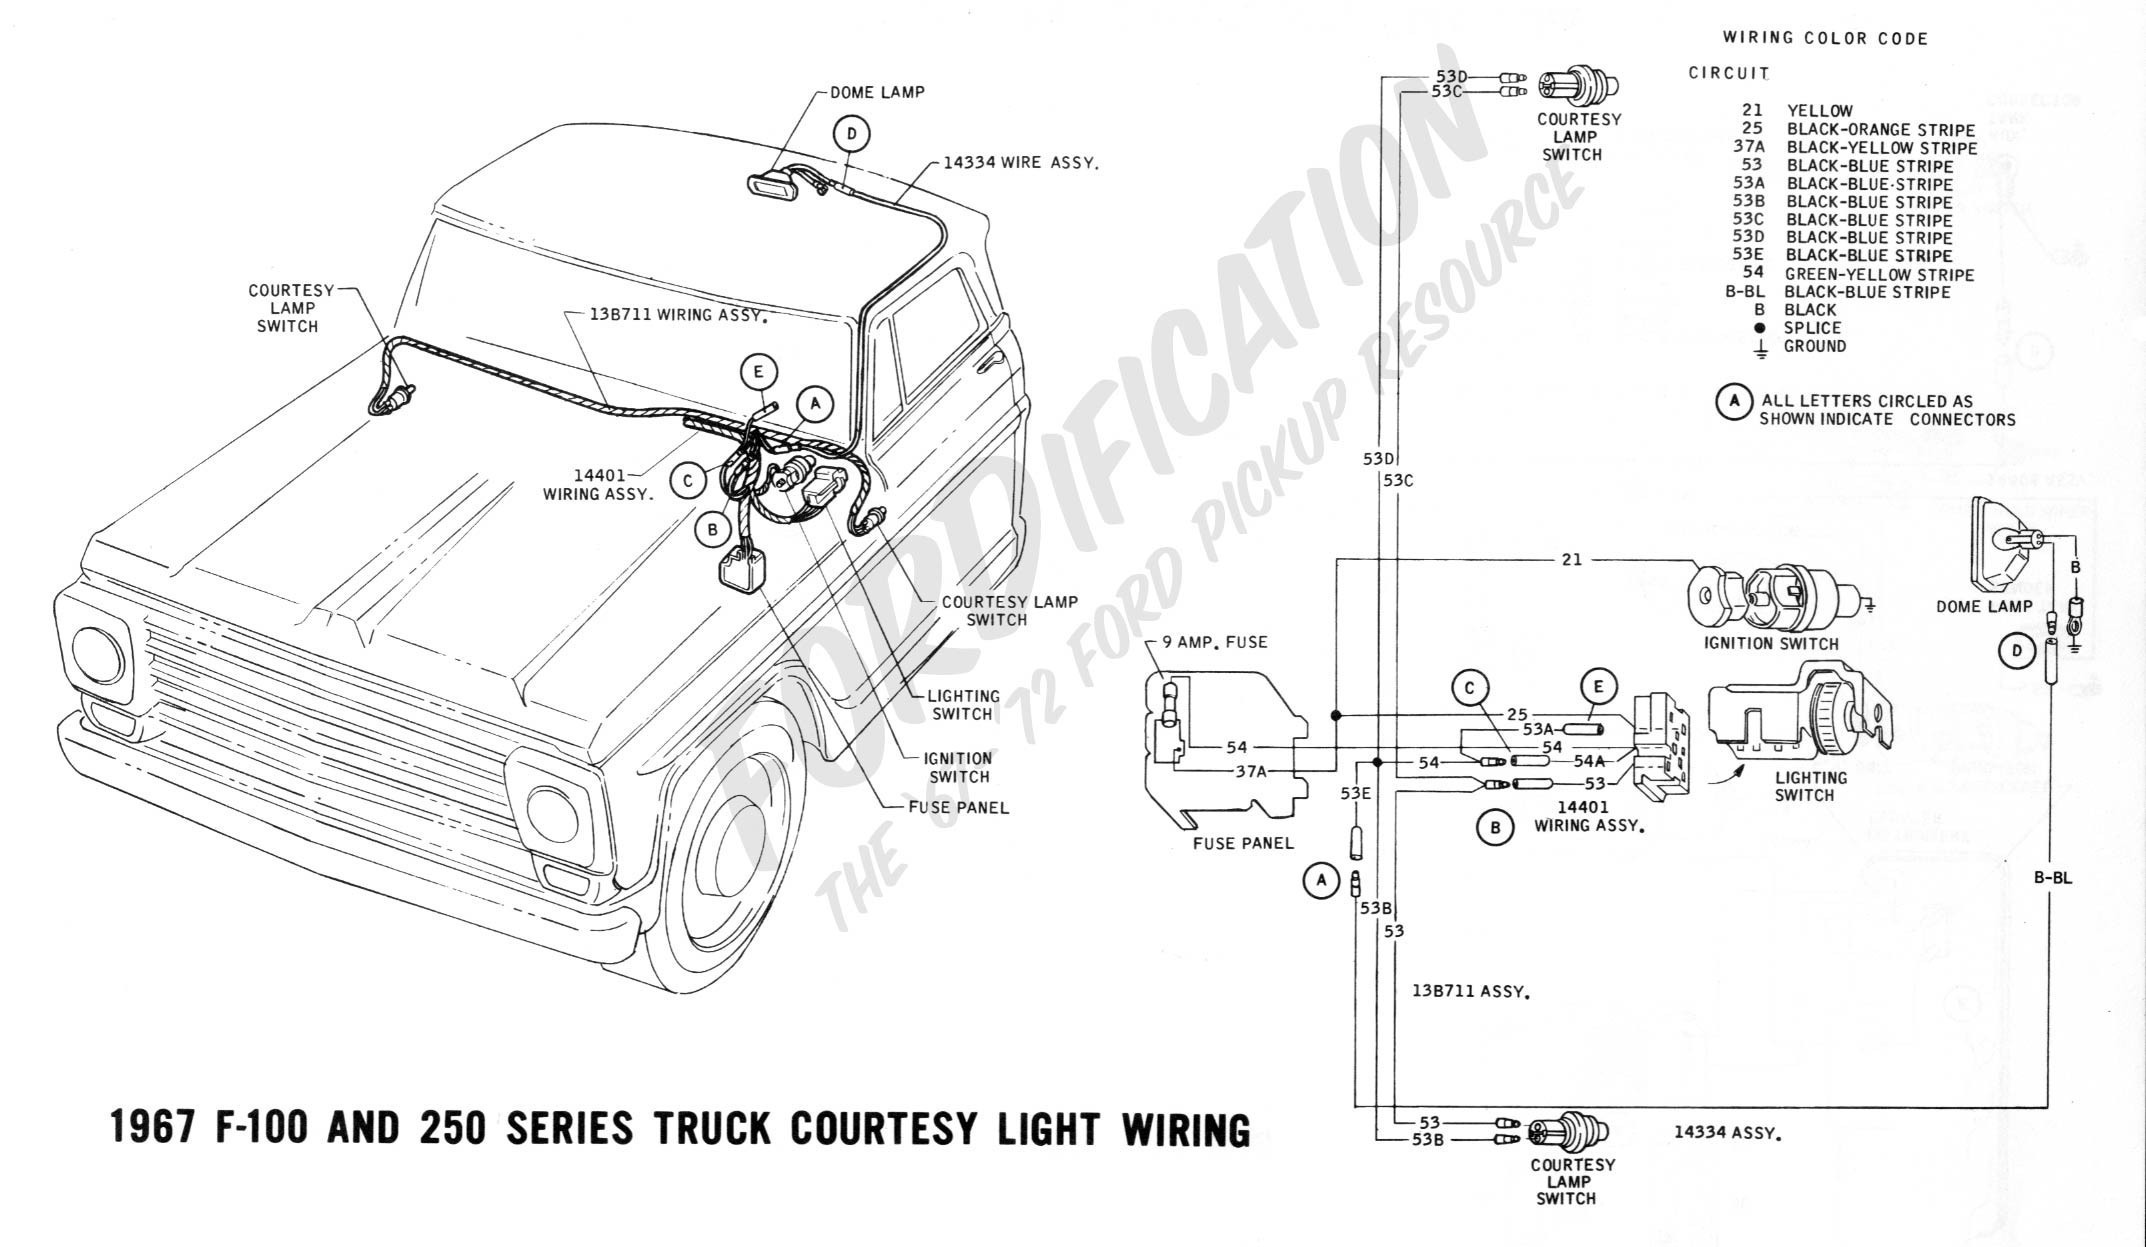 1991 ford F150 Engine Diagram 1978 F150 Wiring Diagram Trusted Wiring Diagram Of 1991 ford F150 Engine Diagram Light Wiring Diagram for 1995 F150 Trusted Wiring Diagrams •